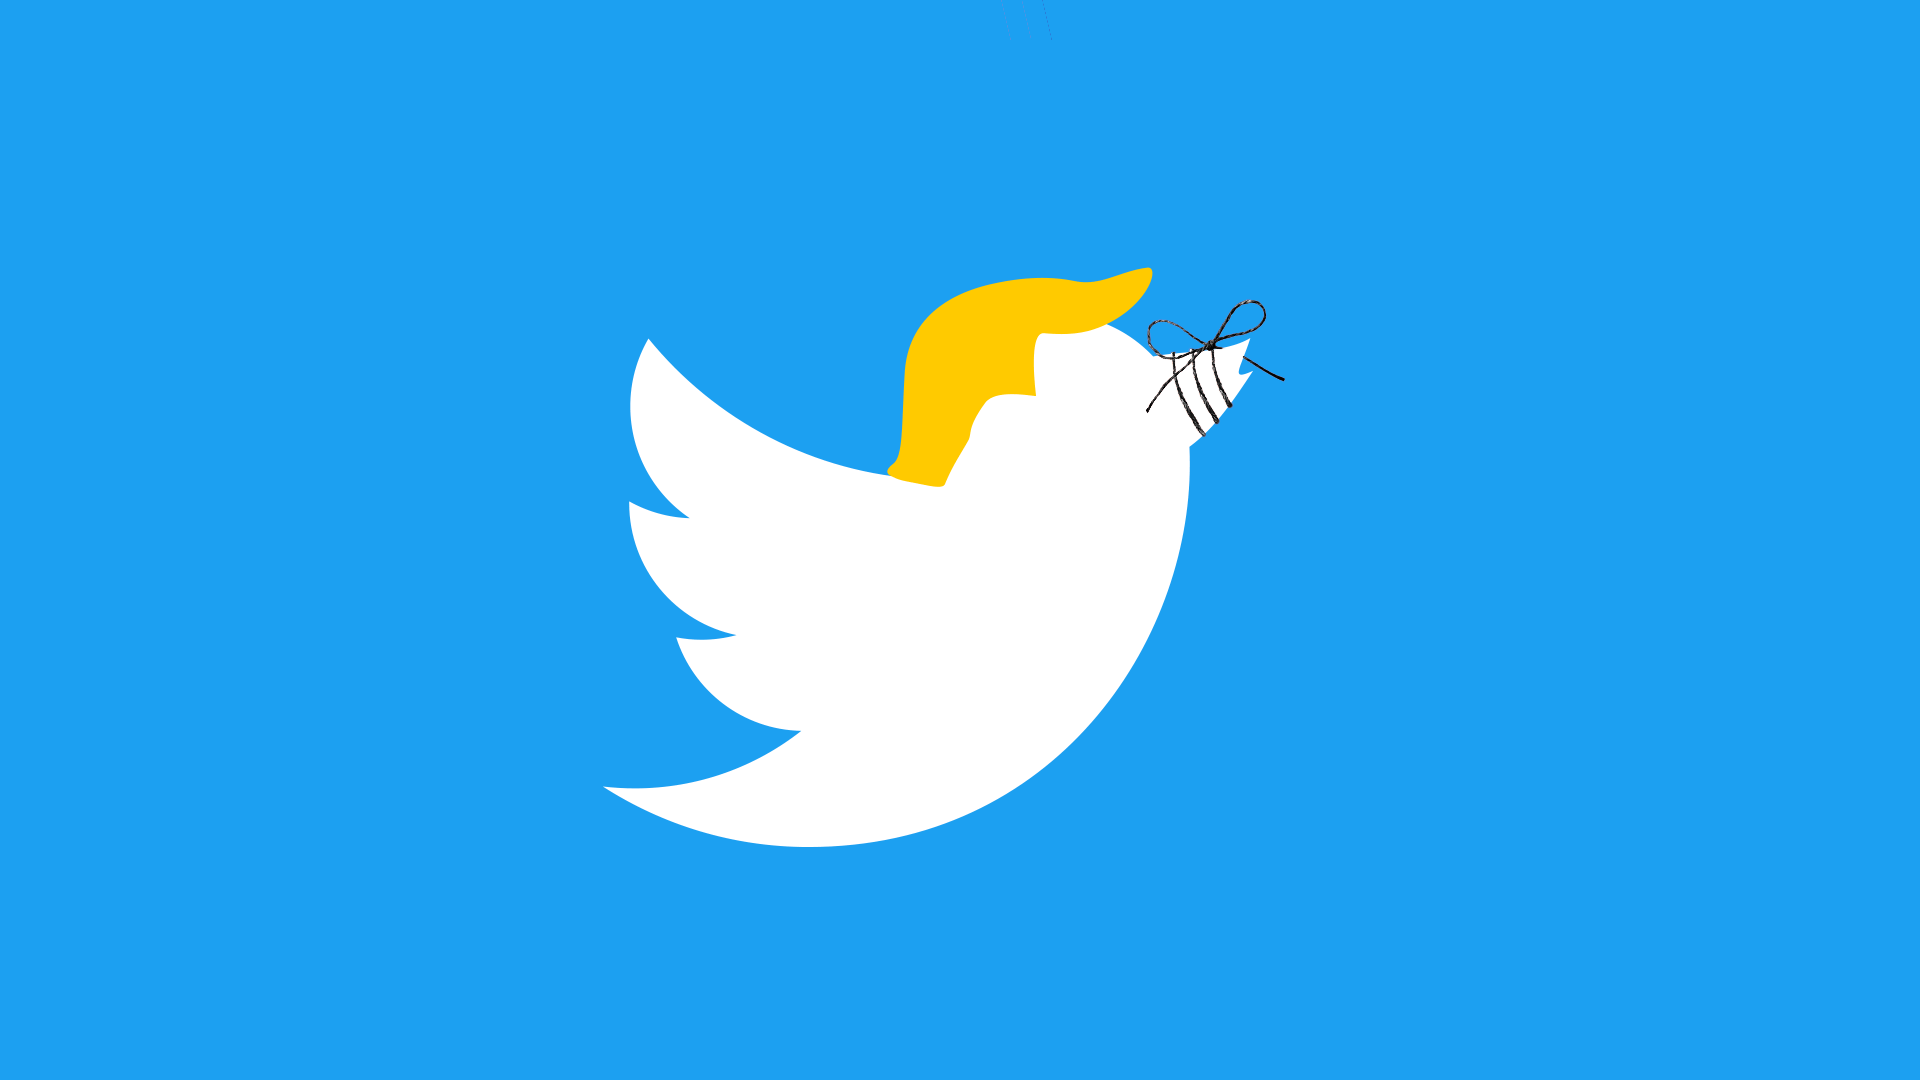 Illustration of a Twitter bird with President Trump's hair and a string tied around it's beak.